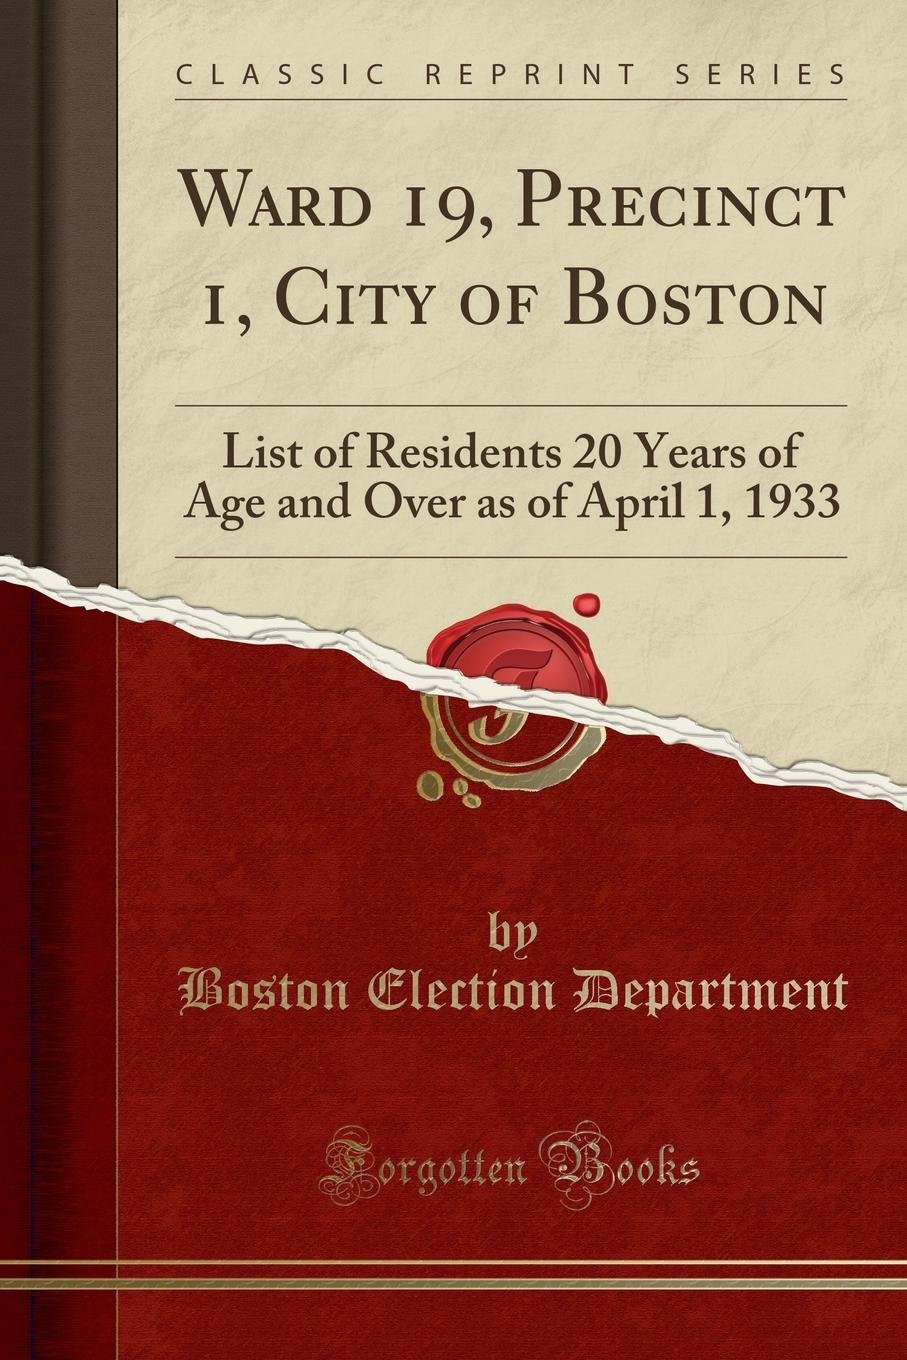 Ward 19, Precinct 1, City of Boston: List of Residents 20 Years of Age and Over as of April 1, 1933 (Classic Reprint) pdf